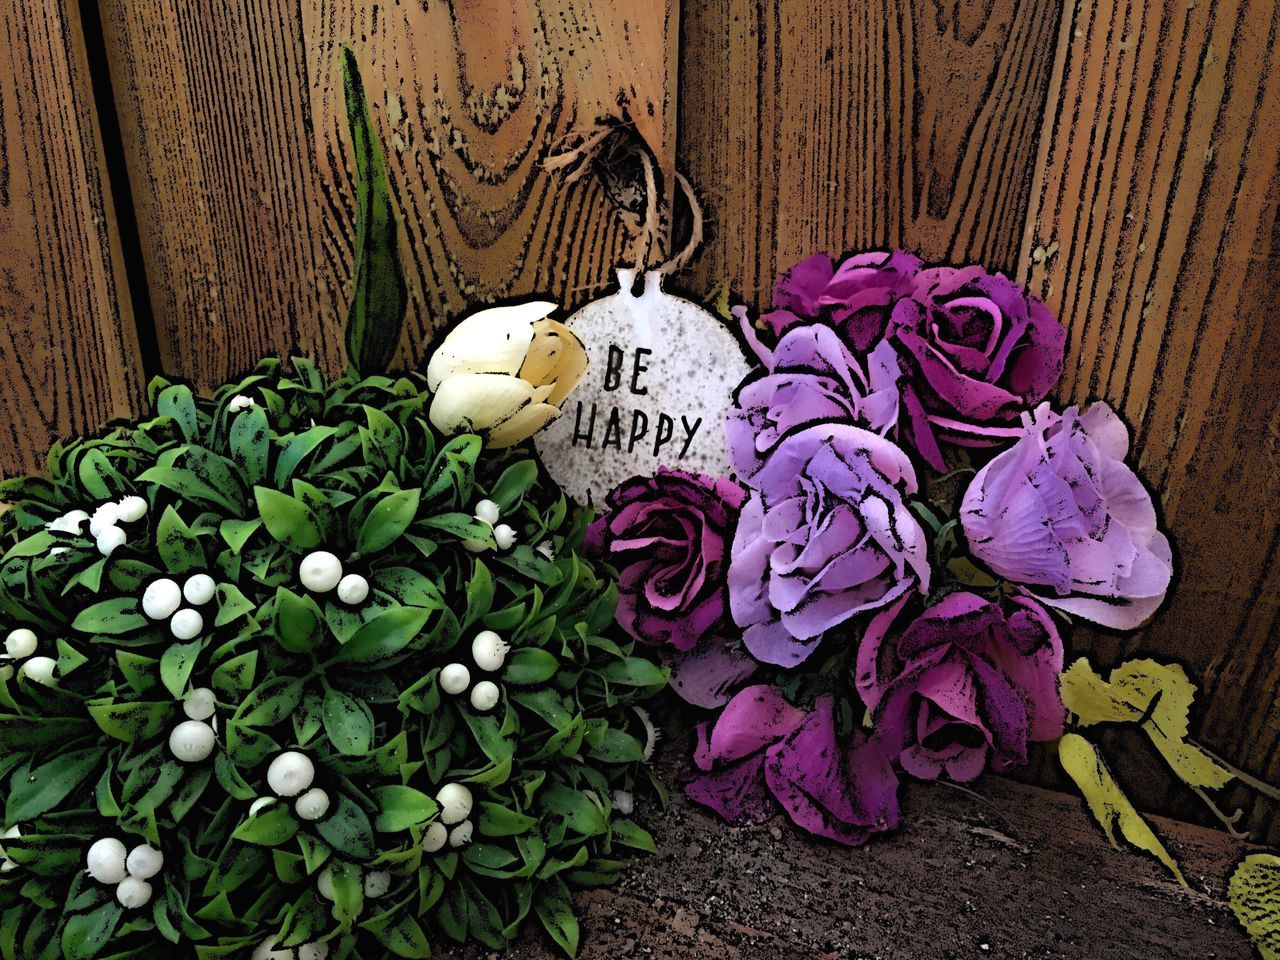 Be Happy No People Flower Flowers Plant Text Day Just Taking Pictures Multiple Colors Wood - Material On My Balcony Just Photography Totally Edited Photo Just Shooting Around!!